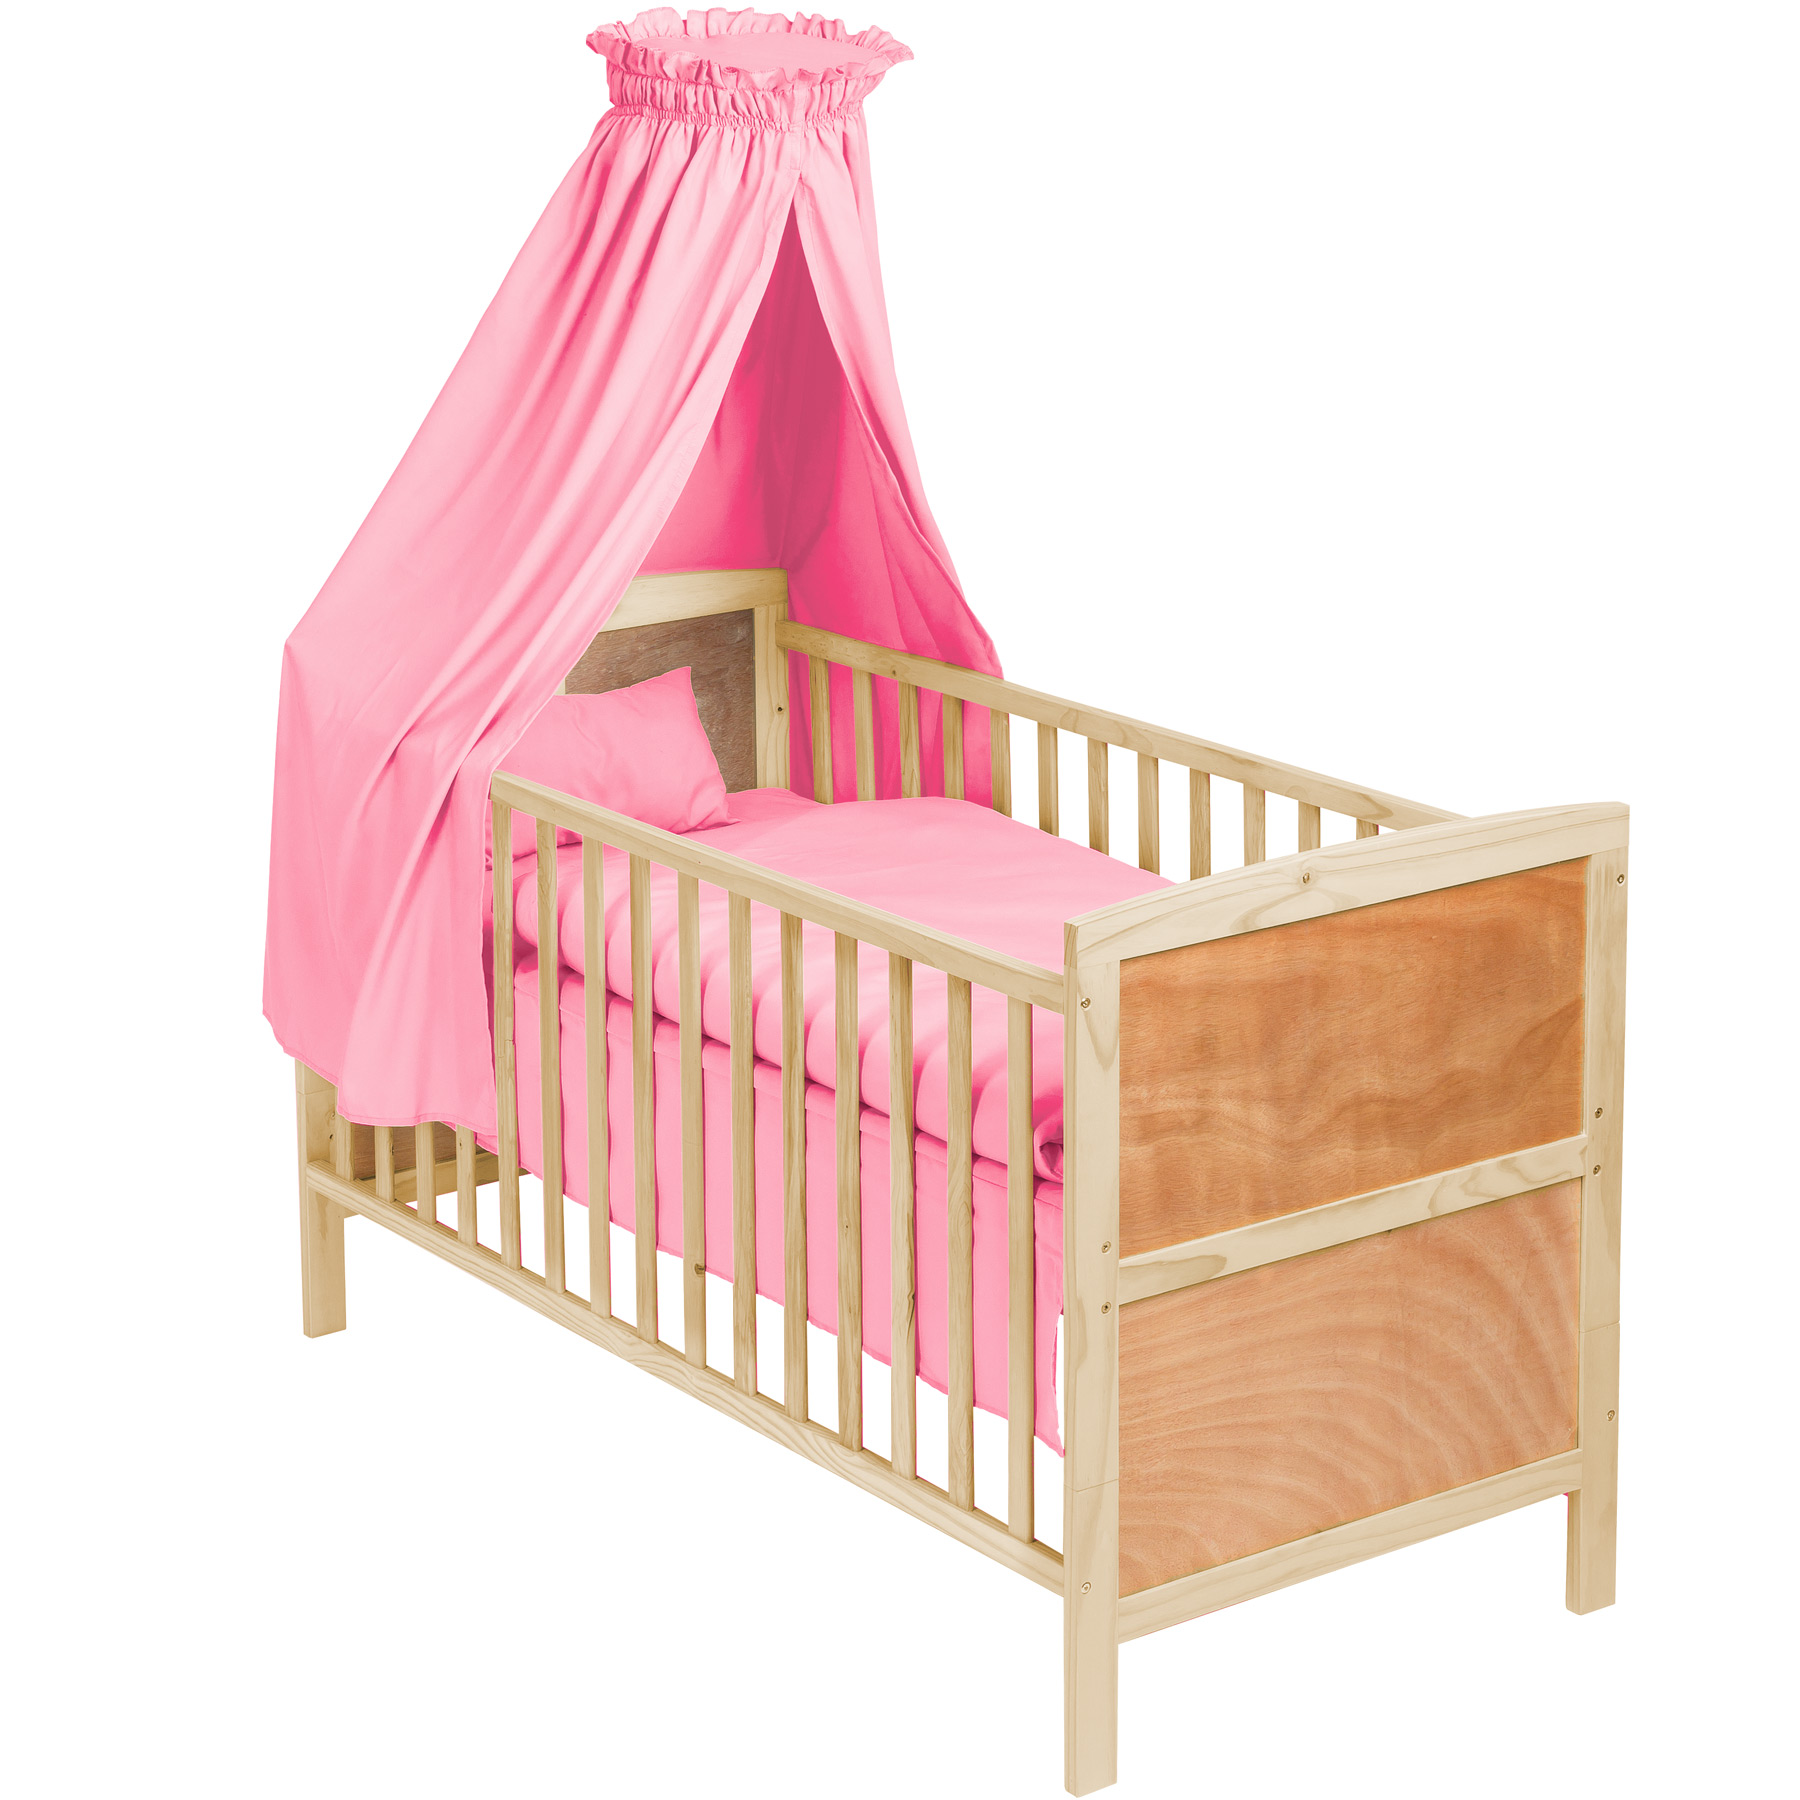 3 in 1 babybett mit himmel kinderbett h henverstellbar aus holz bettset. Black Bedroom Furniture Sets. Home Design Ideas